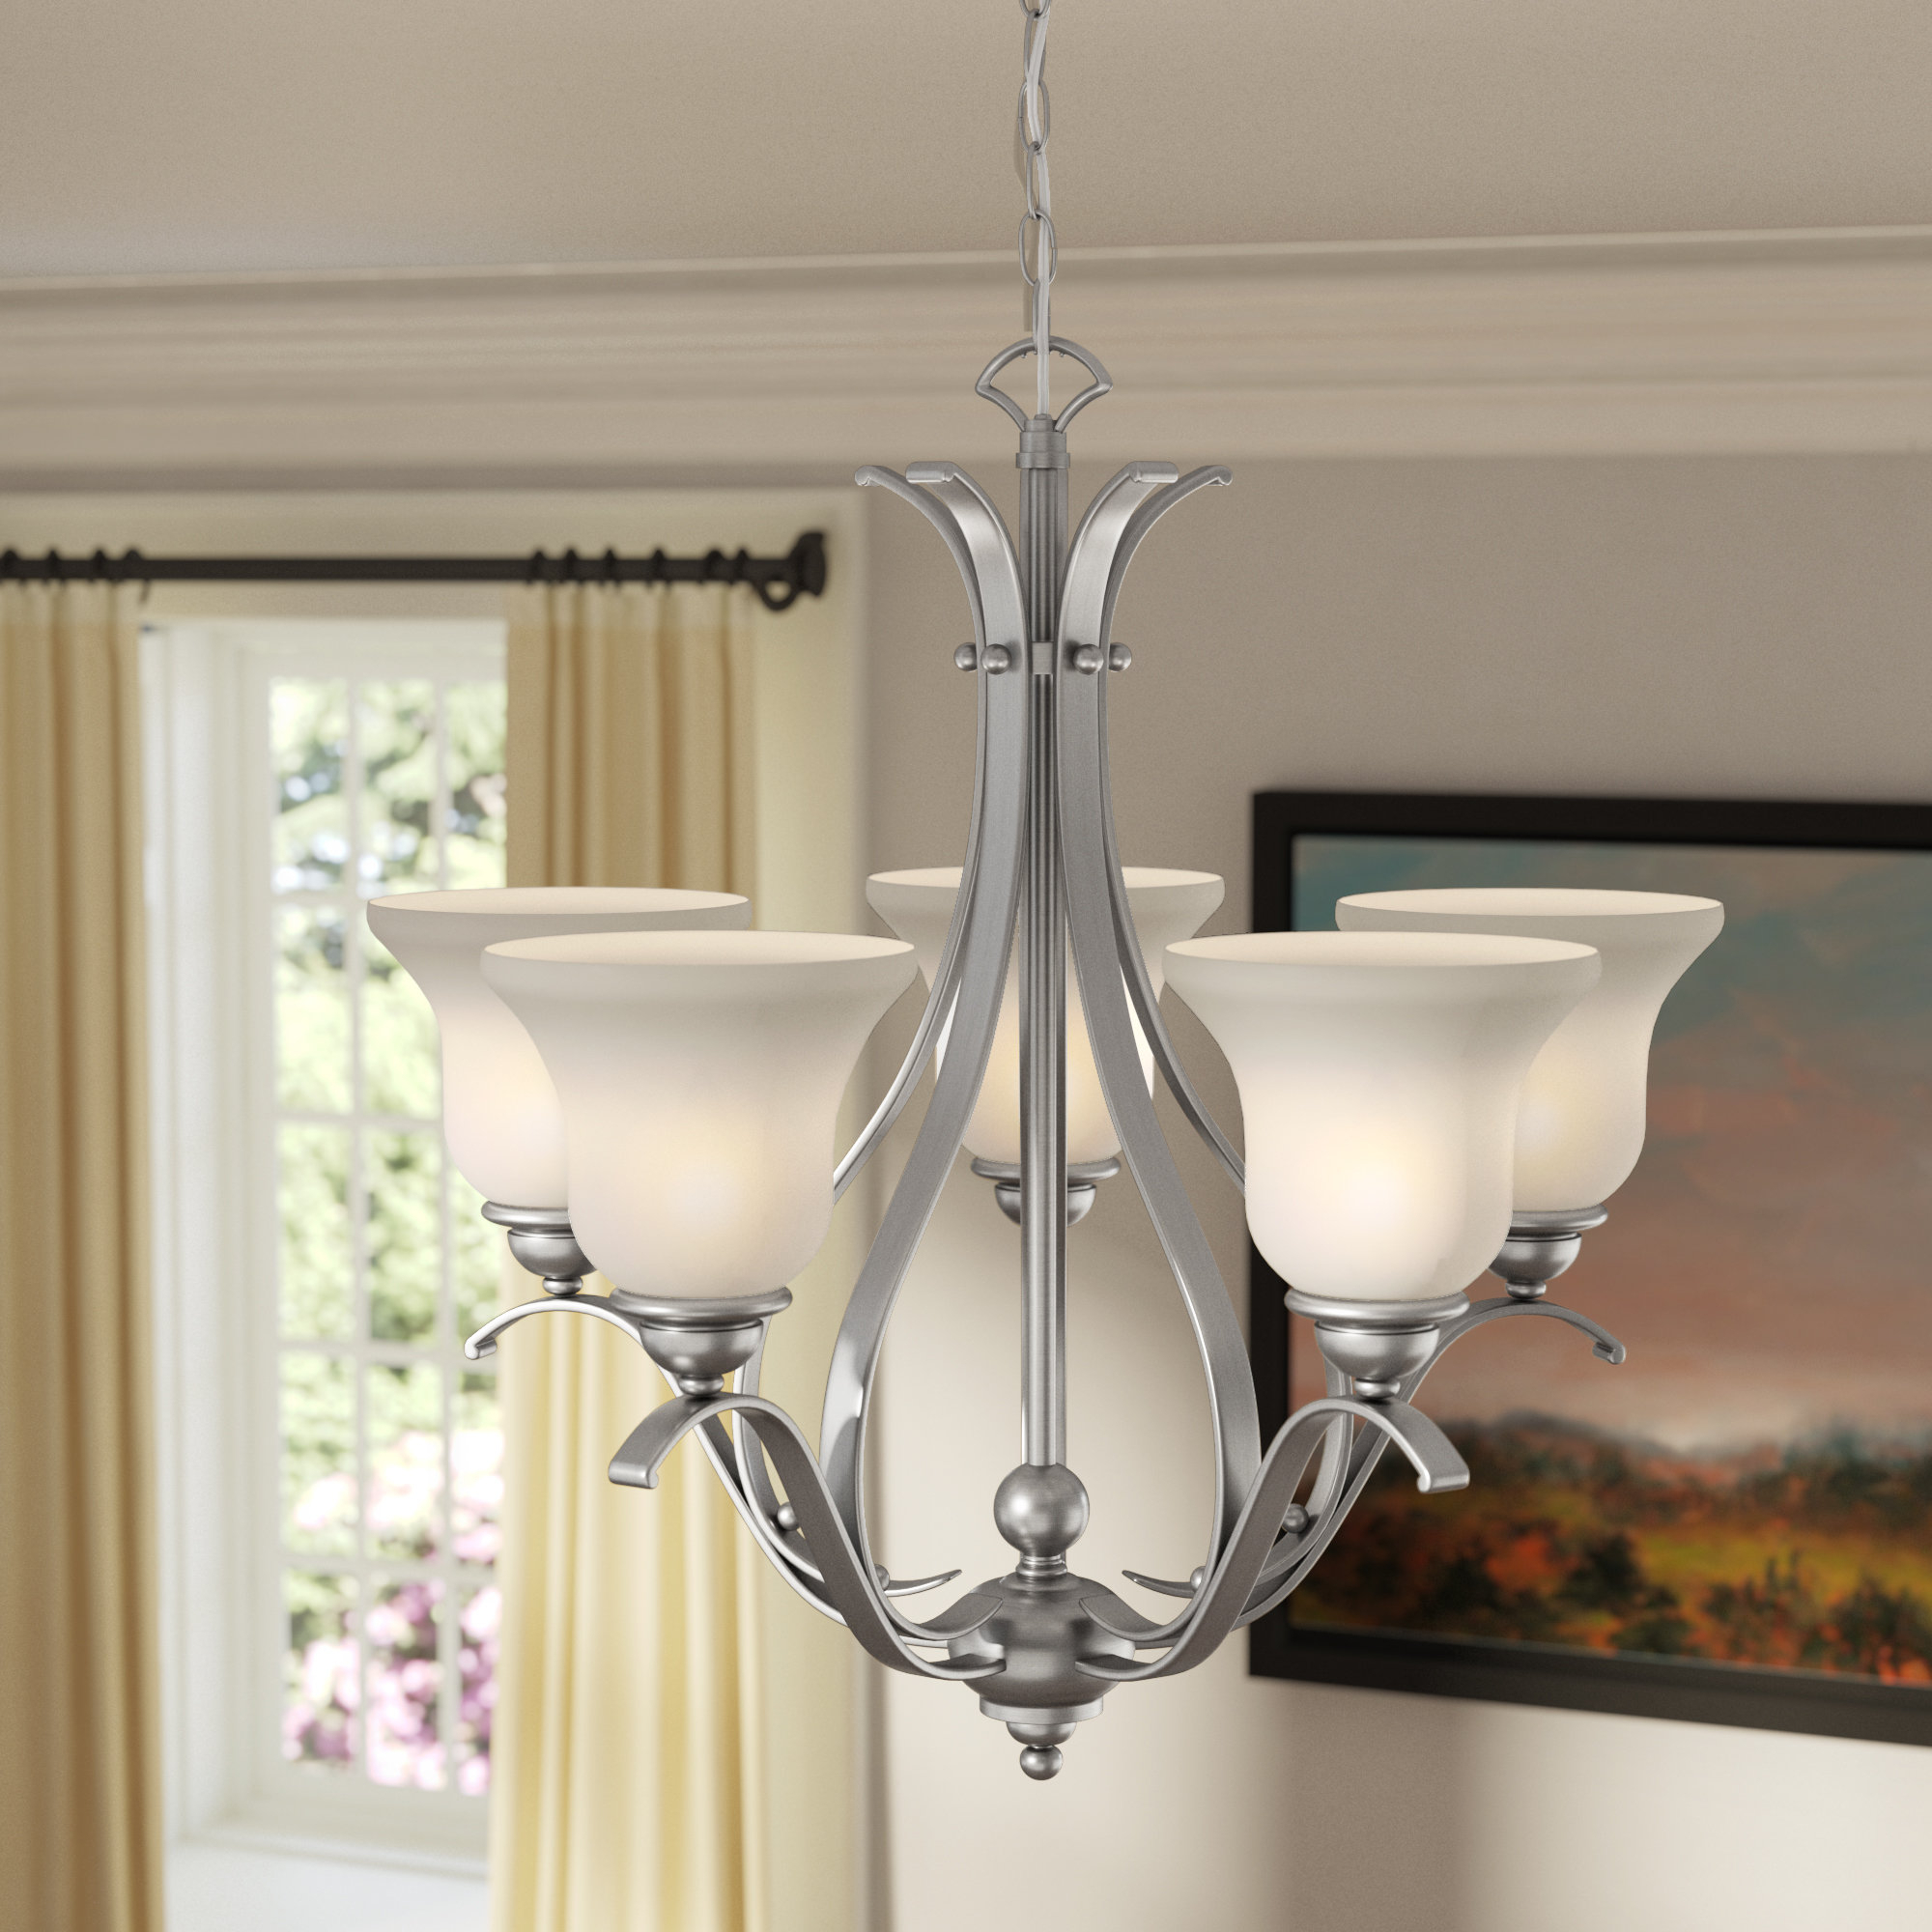 Van Horne 5 Light Shaded Chandelier Throughout Van Horne 3 Light Single Teardrop Pendants (View 13 of 30)